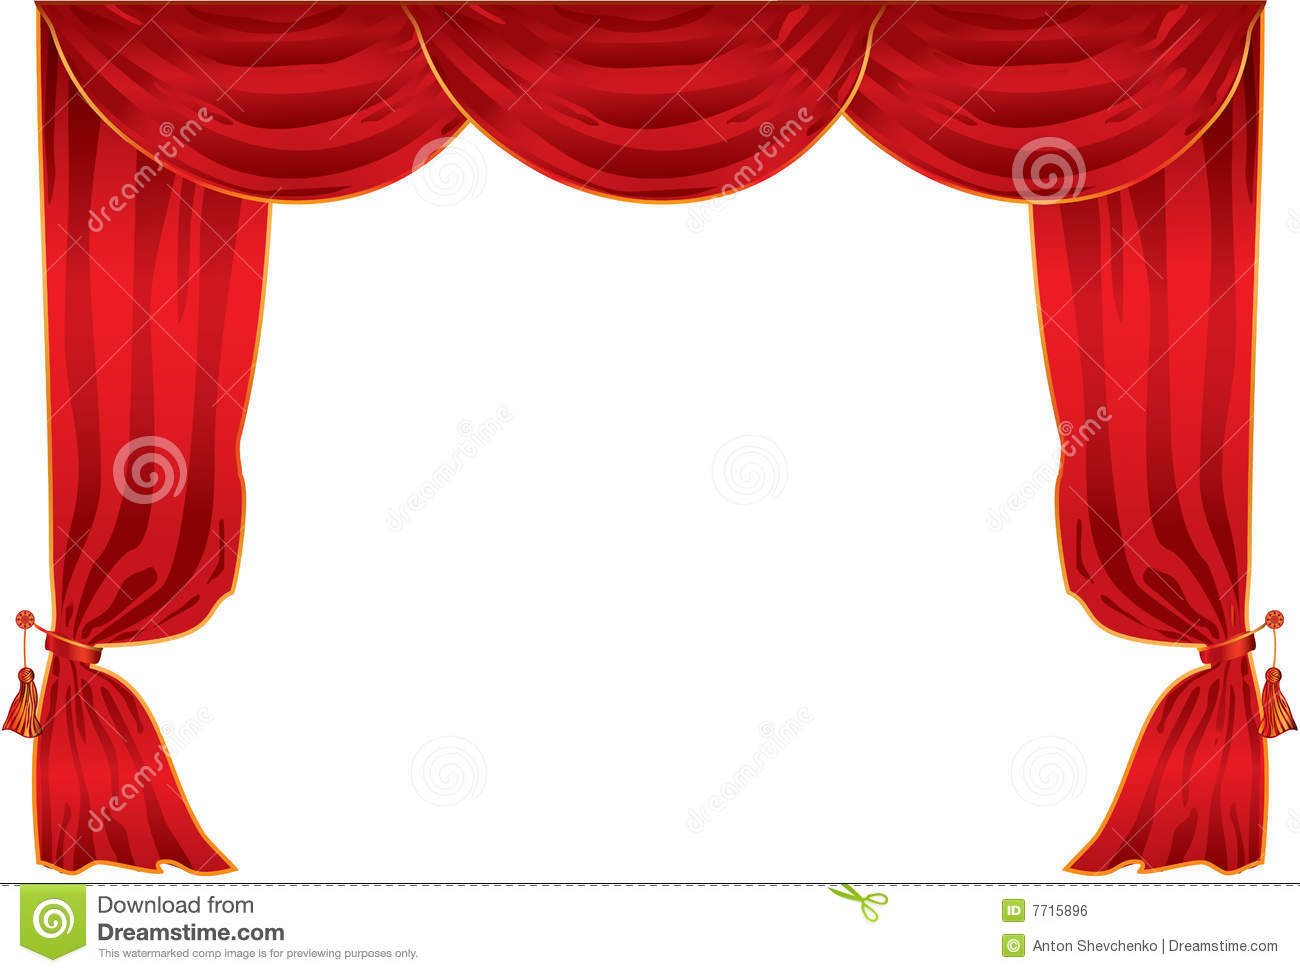 Curtain Theatre Stock Vector. Illustration Of Curtains - 7715896 pour Dessin Theatre